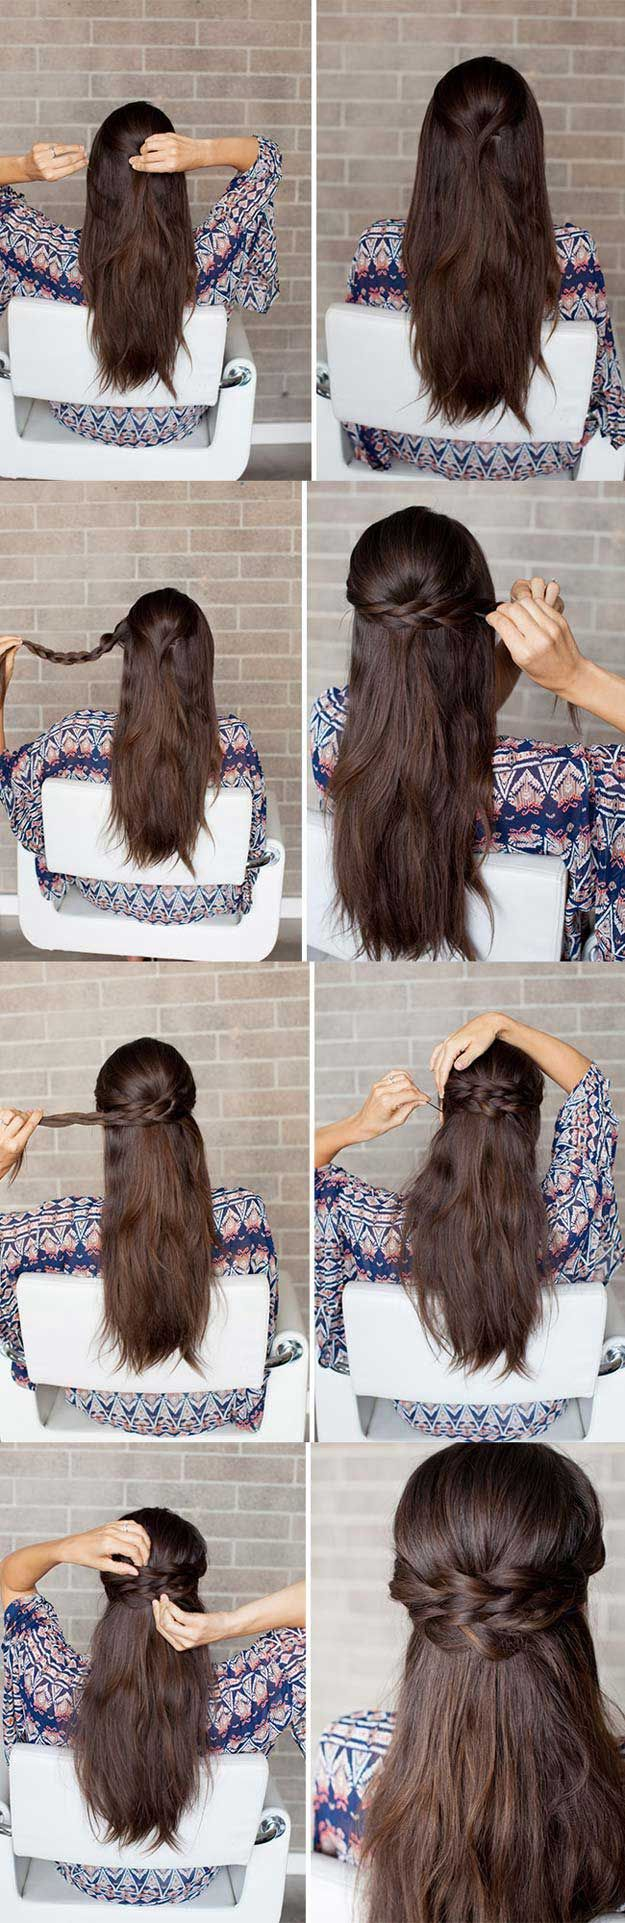 31 Amazing Half Up Half Down Hairstyles For Long Hair The Goddess In 2020 Down Hairstyles For Long Hair Long Hair Styles Braids For Long Hair